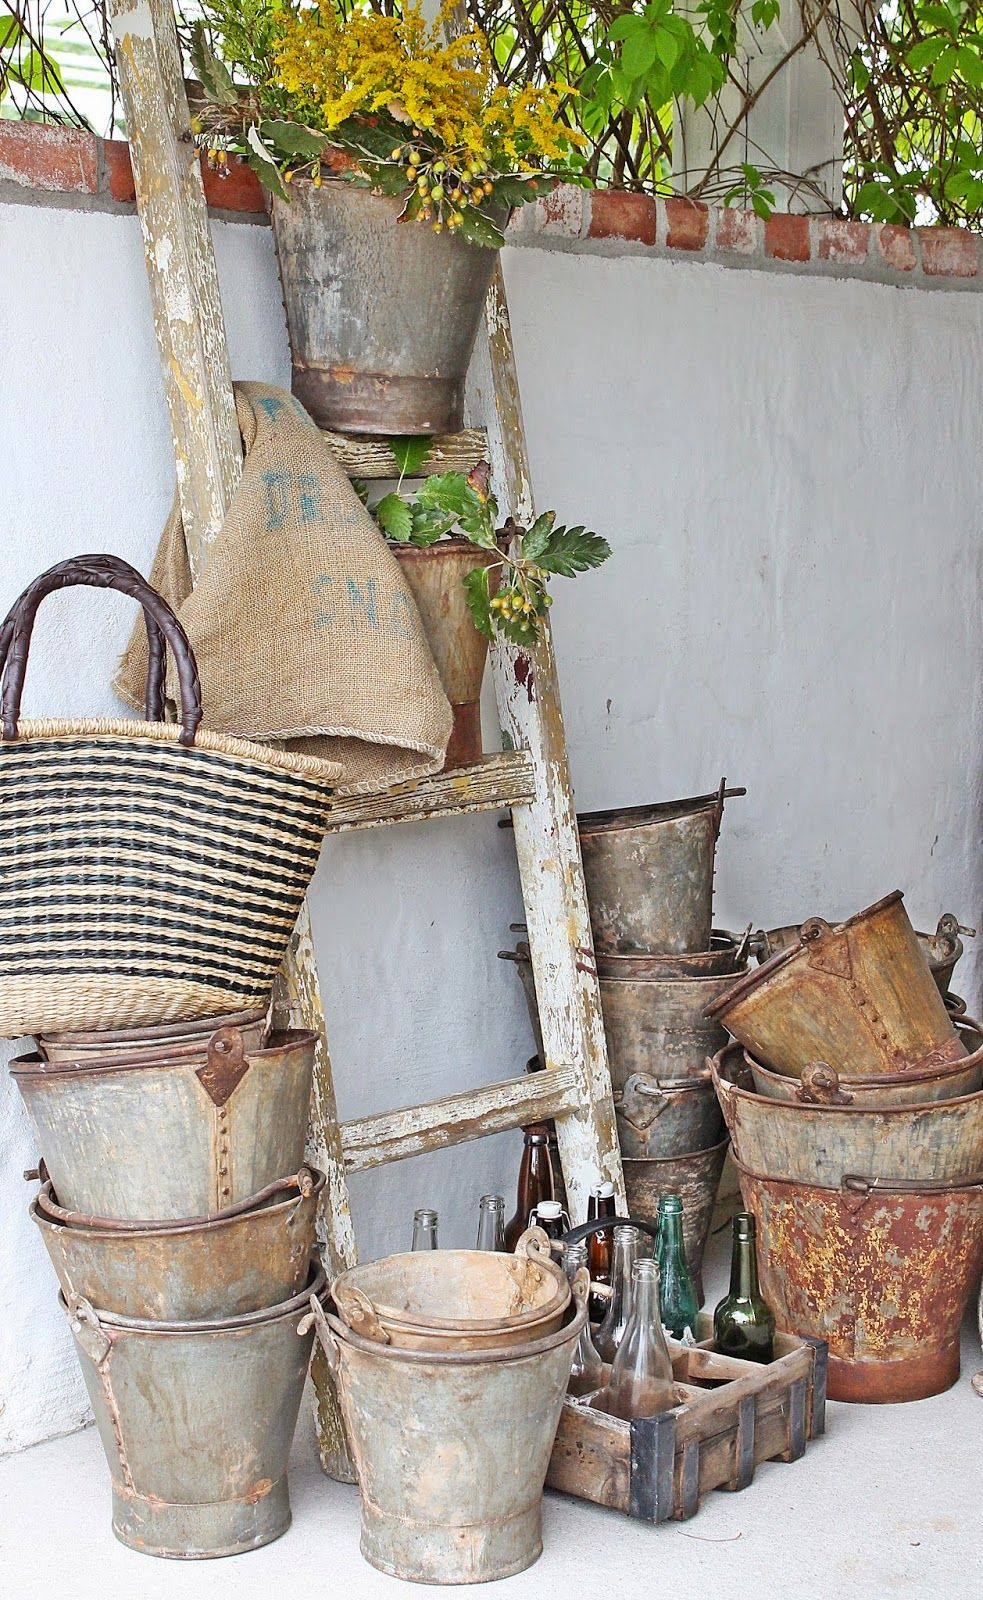 zinc buckets and ladder, garden equipment | old buckets | Pinterest ...